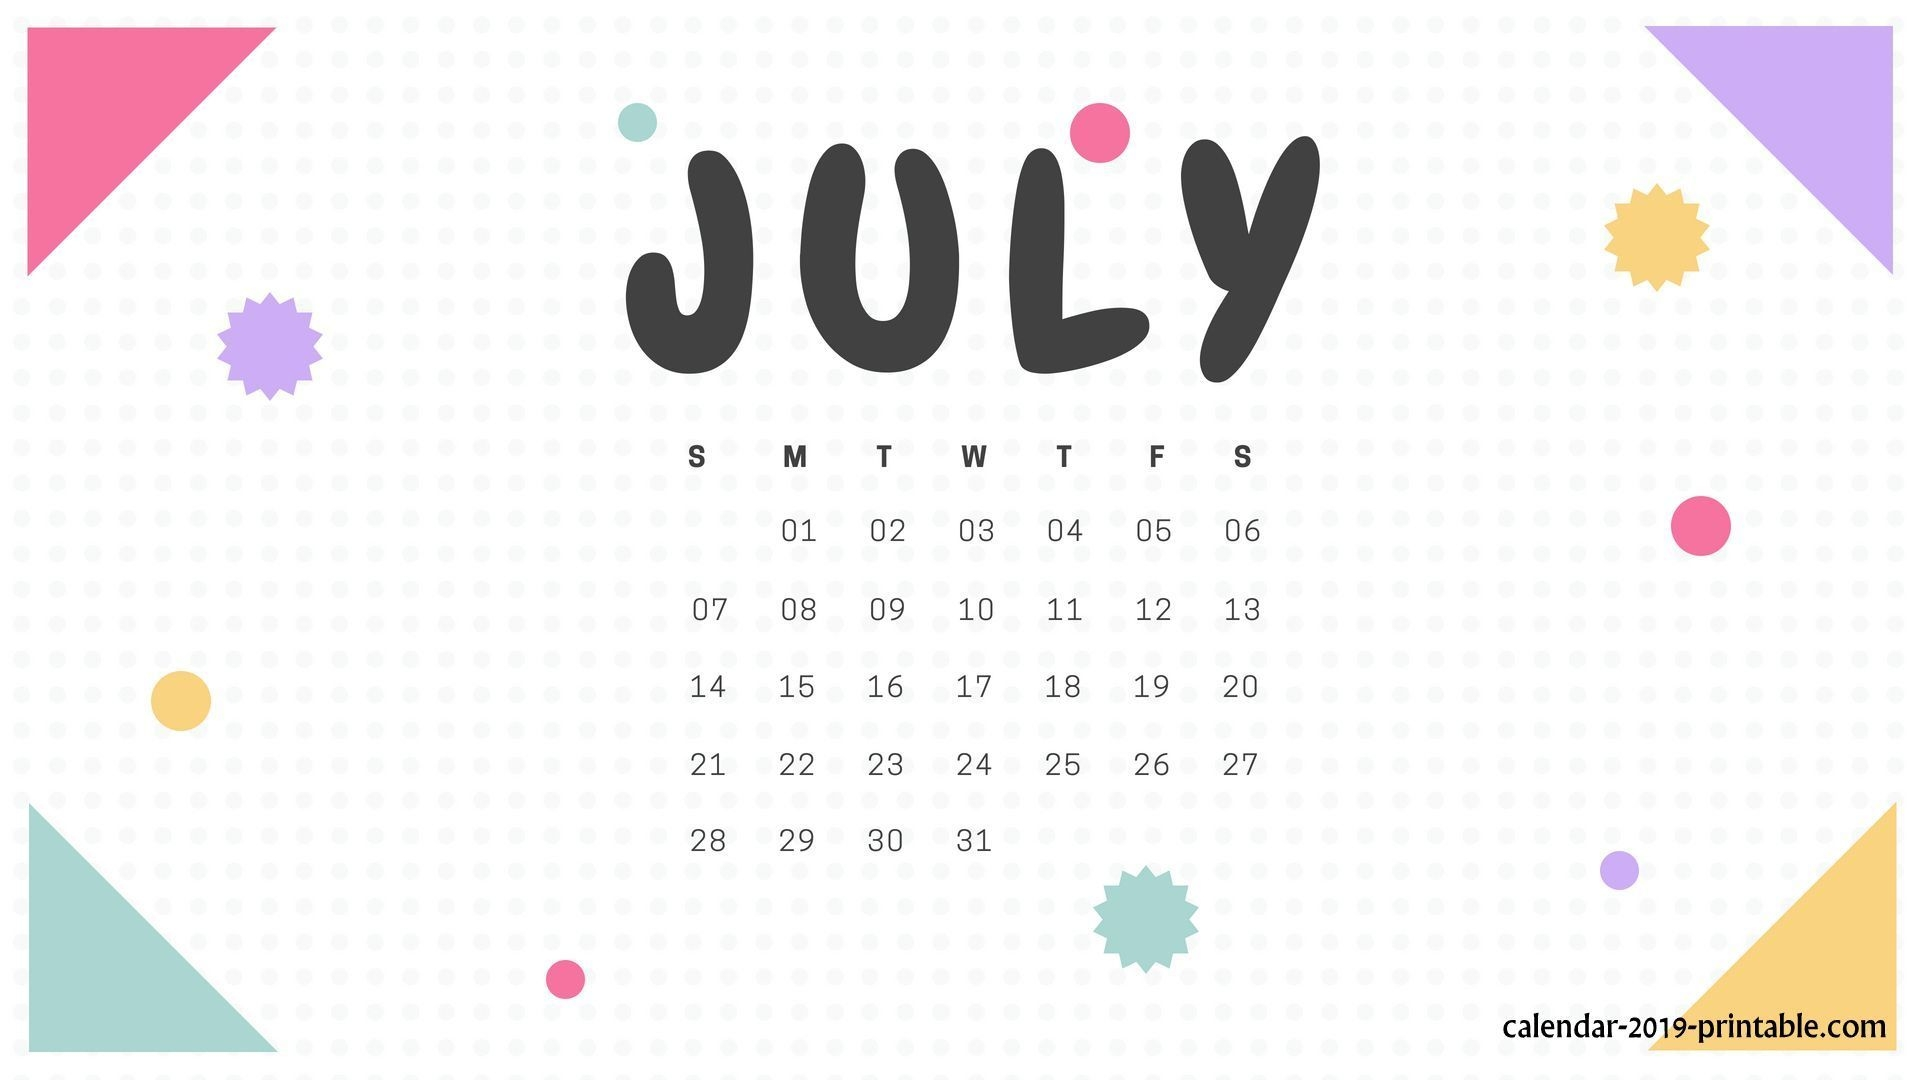 June 2019 Desktop Calendar Wallpaper Calendar Format Example 1920x1080